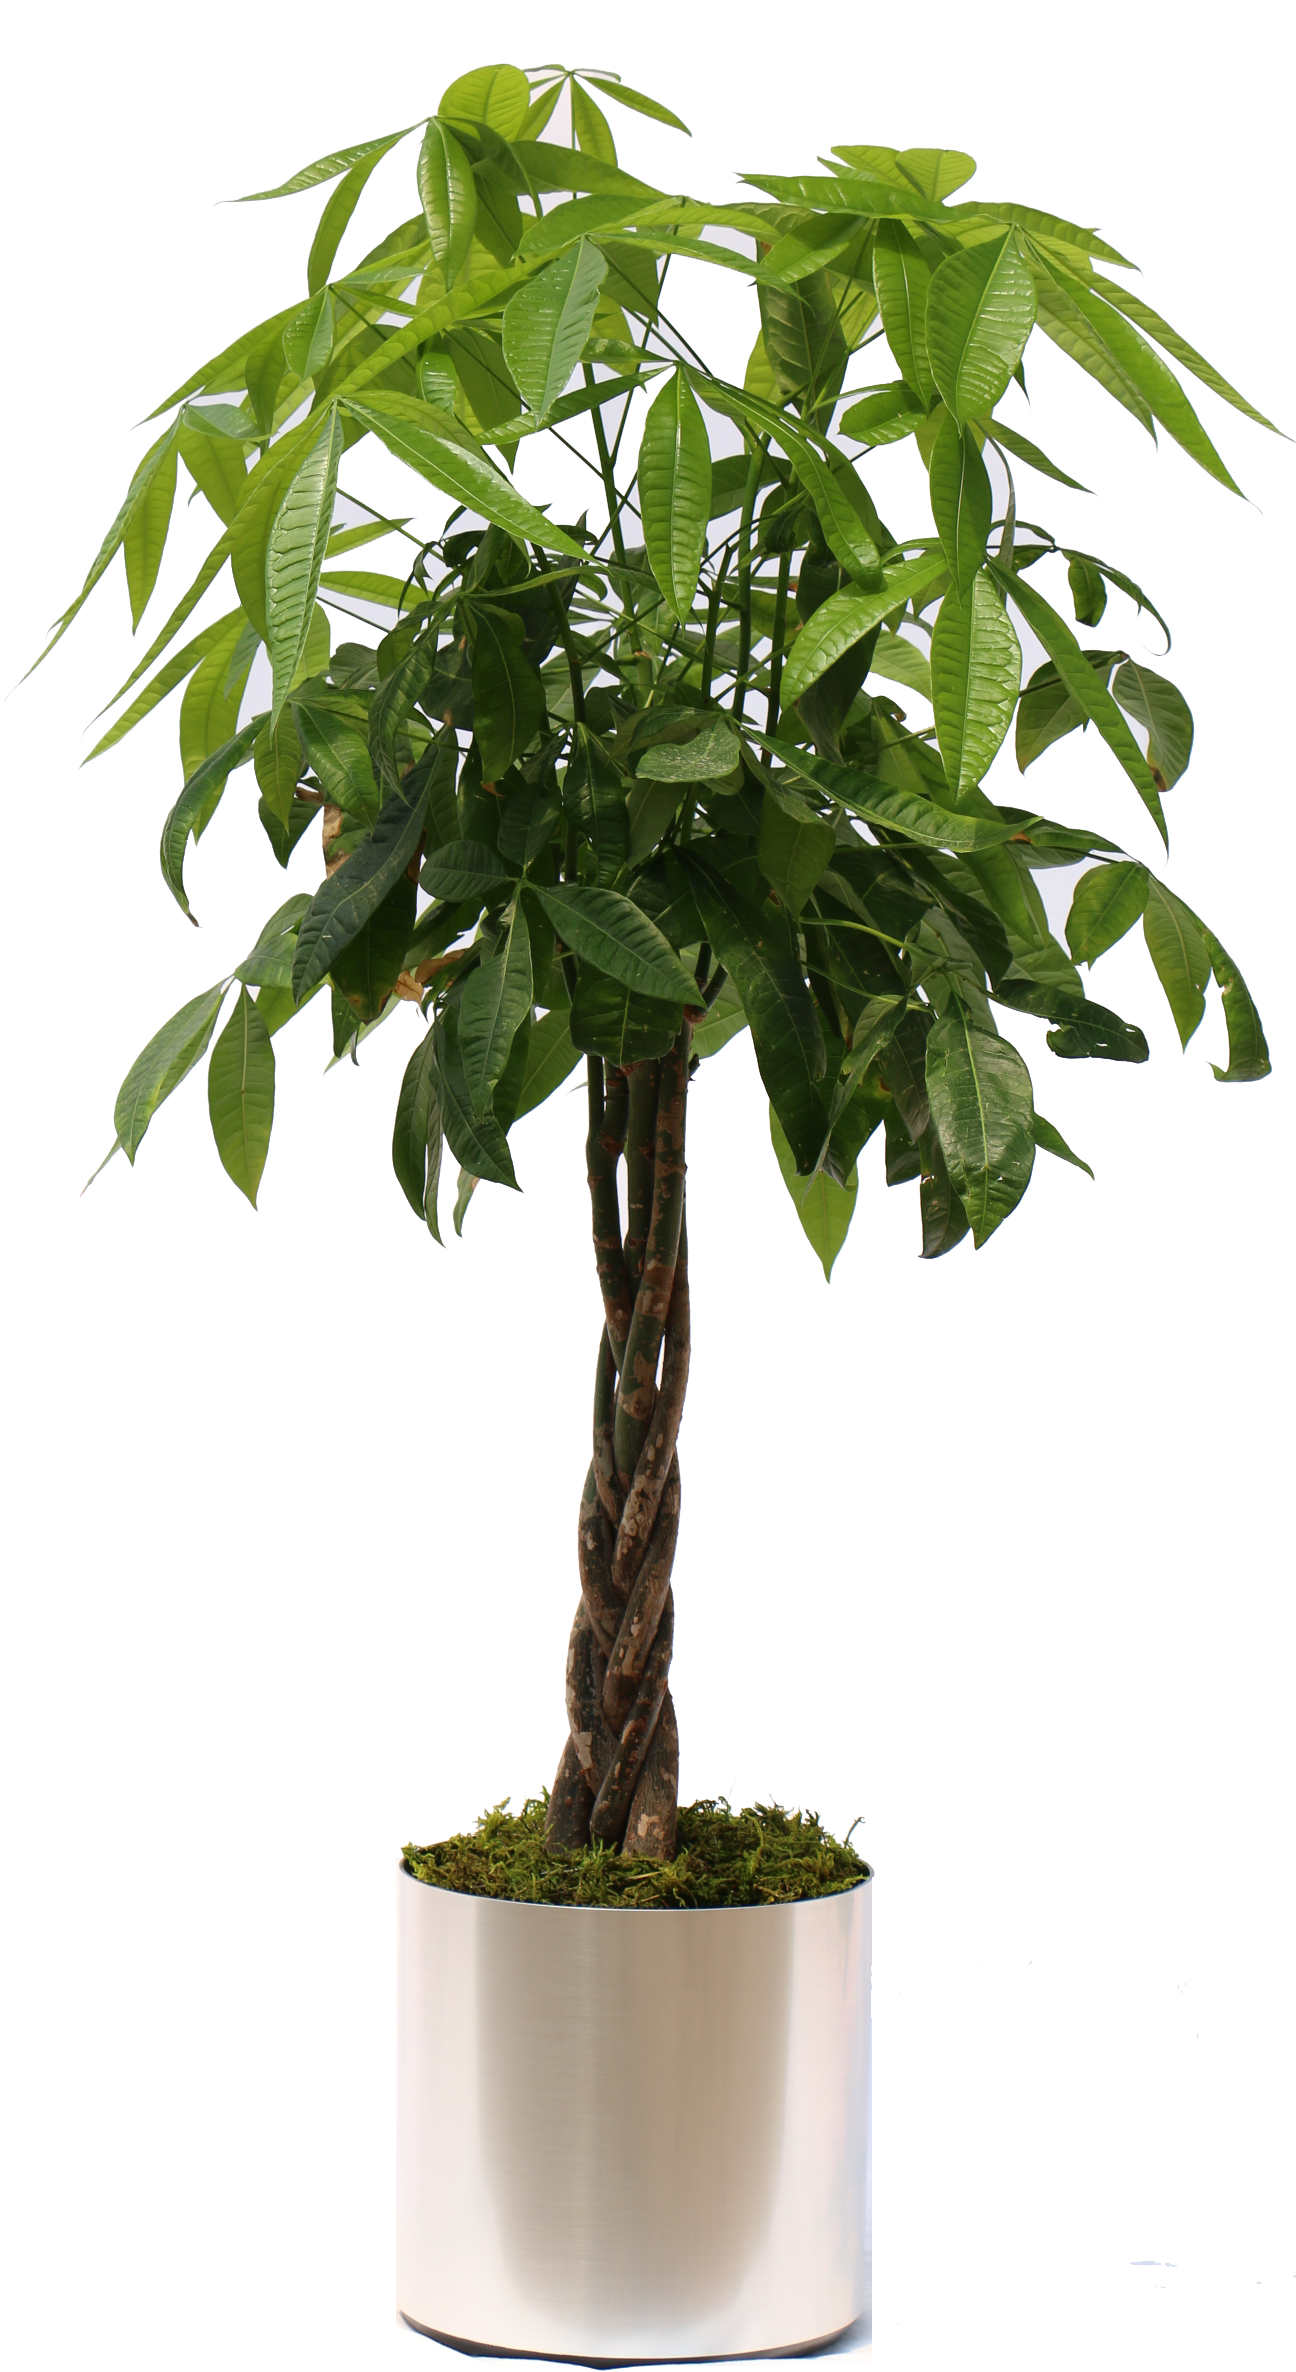 Watering money tree clipart clipart library stock 31++ Great Indoor Potted Plant clipart library stock